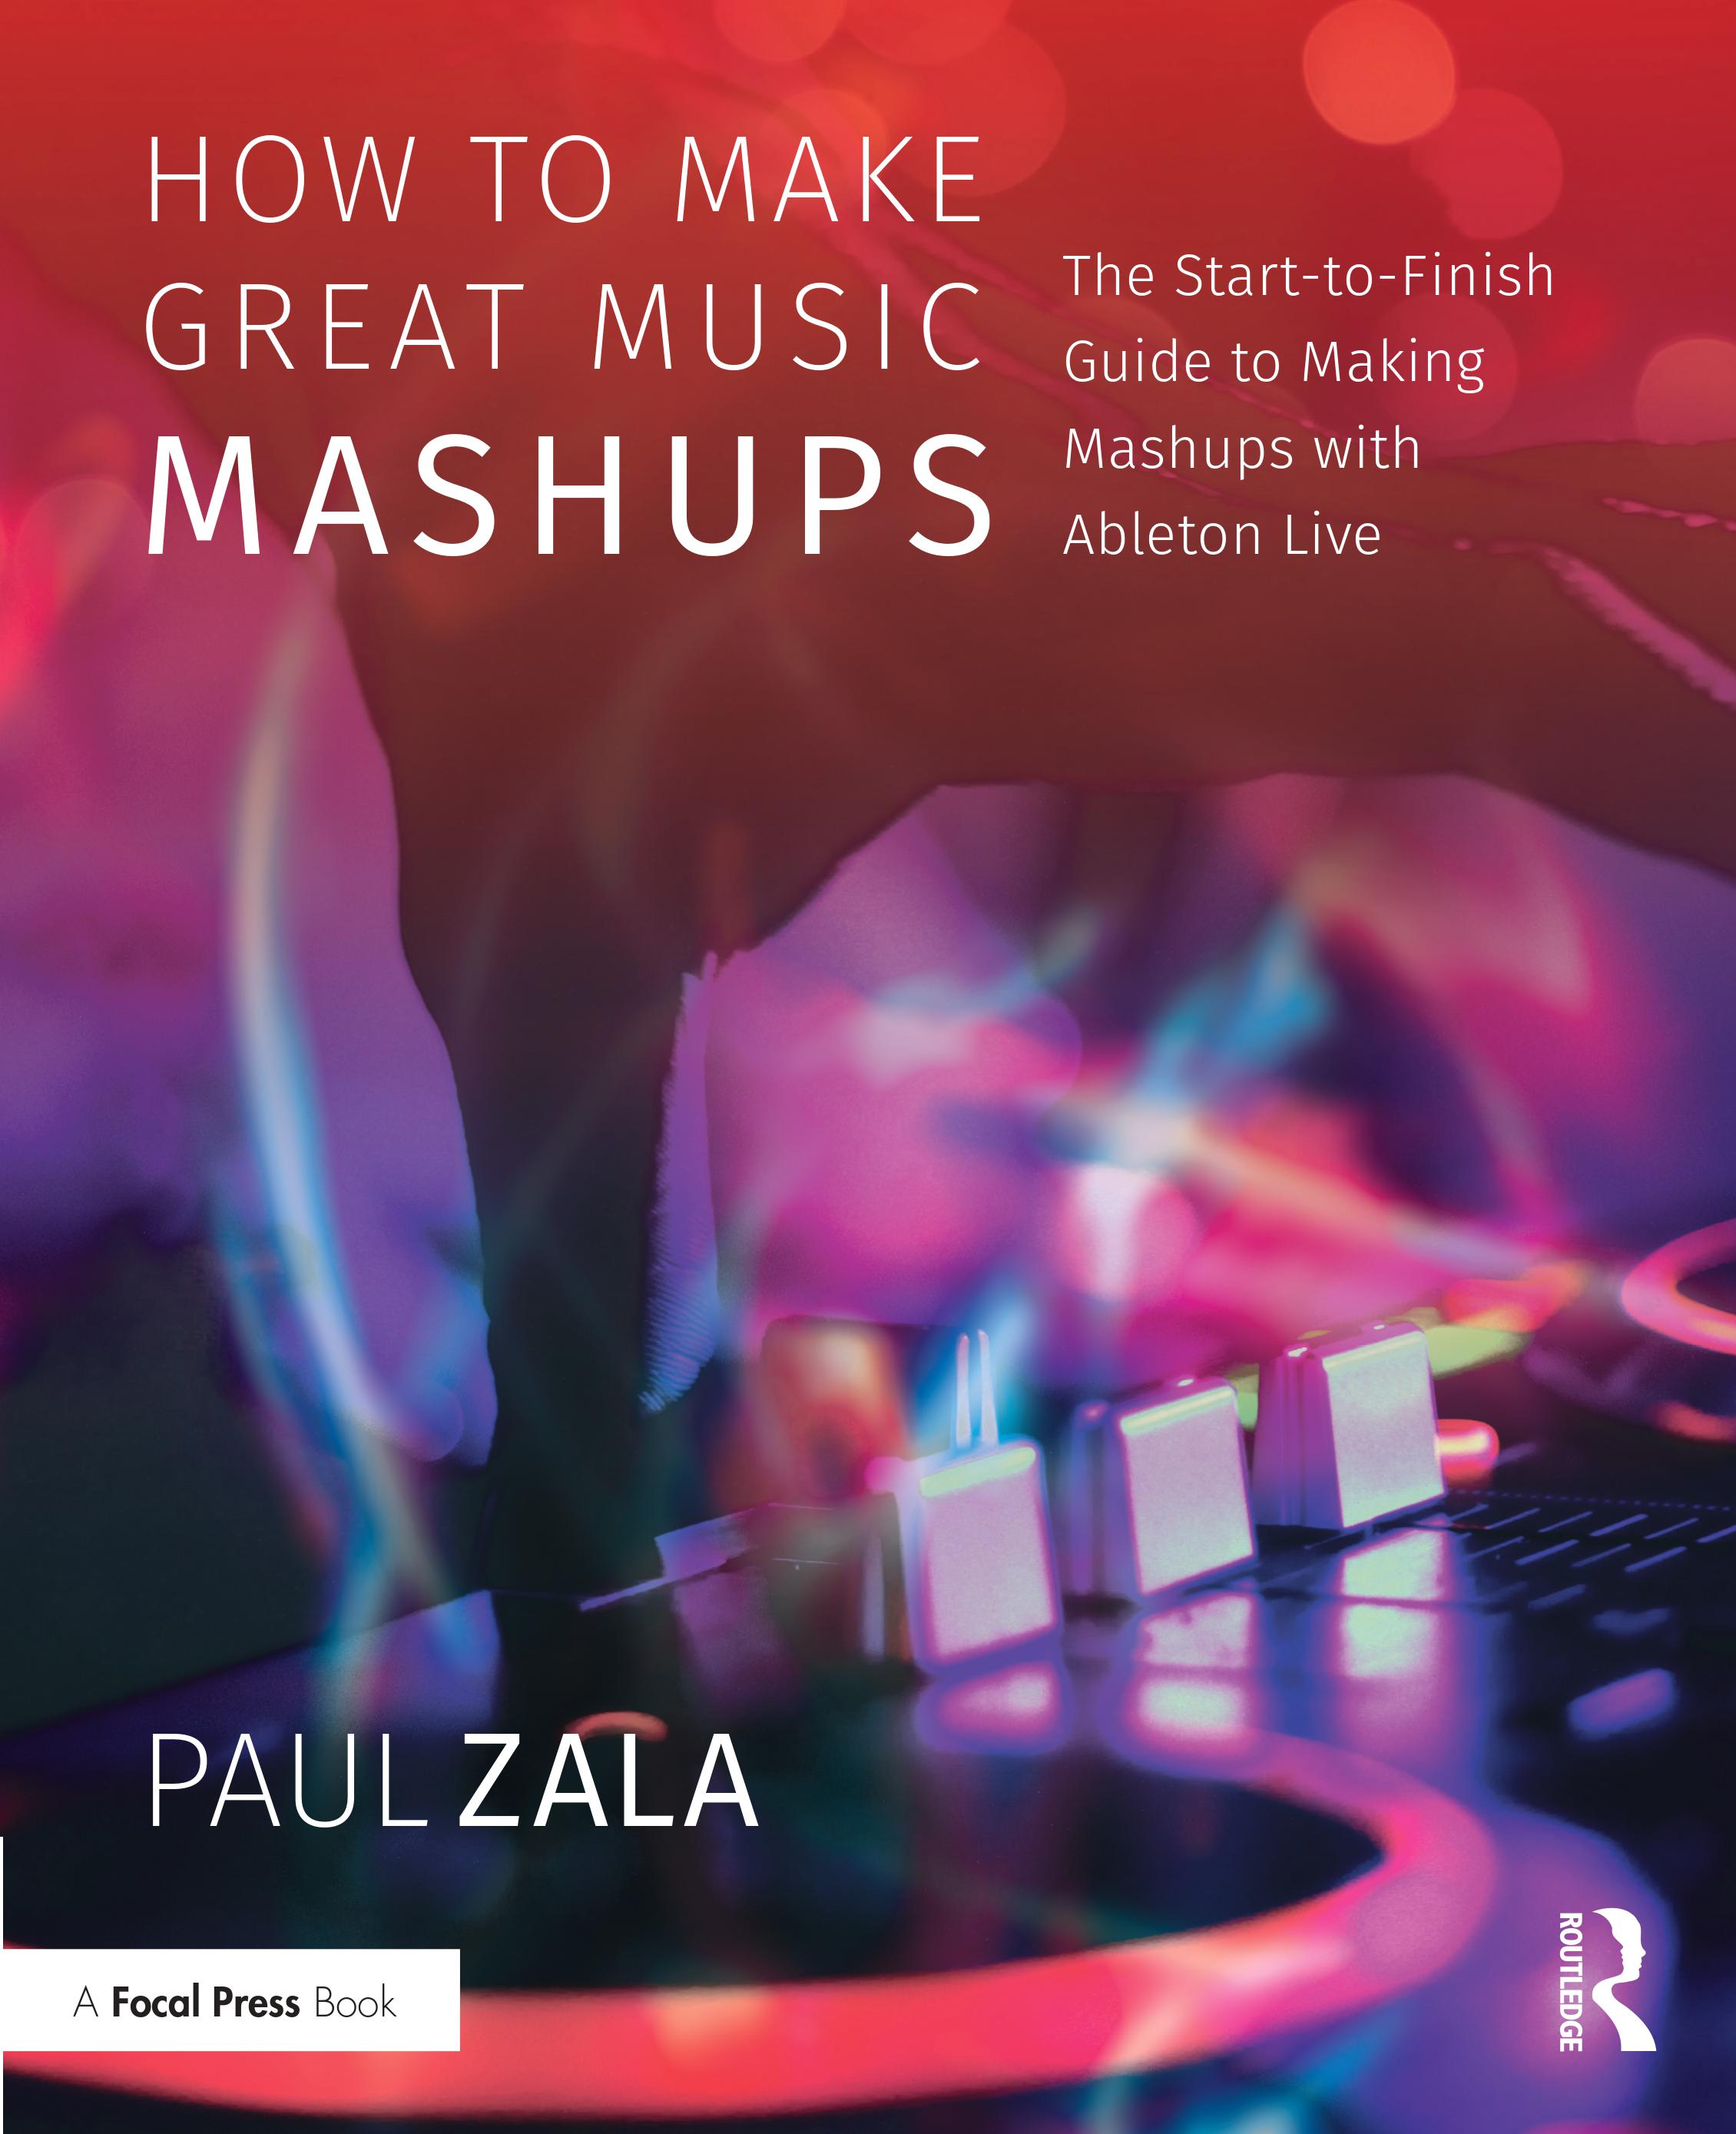 How to Make Great Music Mashups – The Start-To-Finish Guide